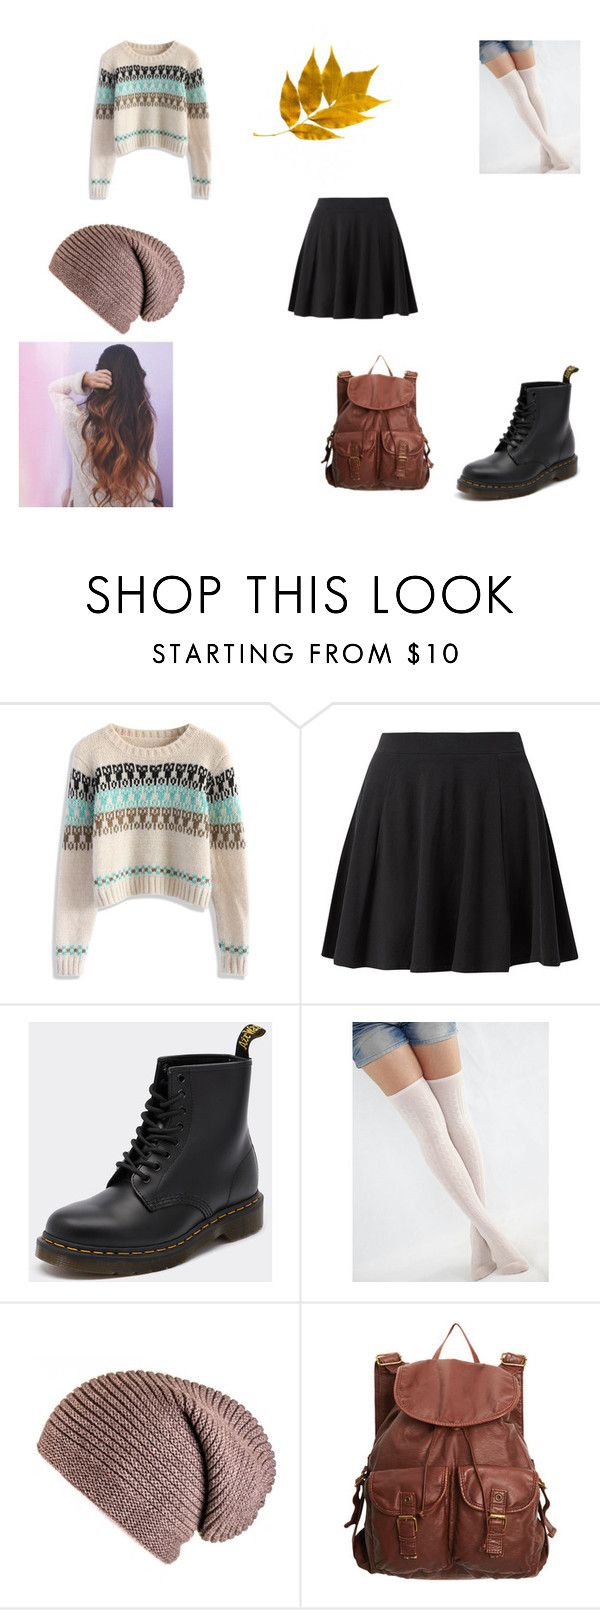 """""""cute, semi-dressy winter outfit!"""" by amcgirl22 ❤ liked on Polyvore featuring Chicwish, Dr. Martens and dELiA*s"""